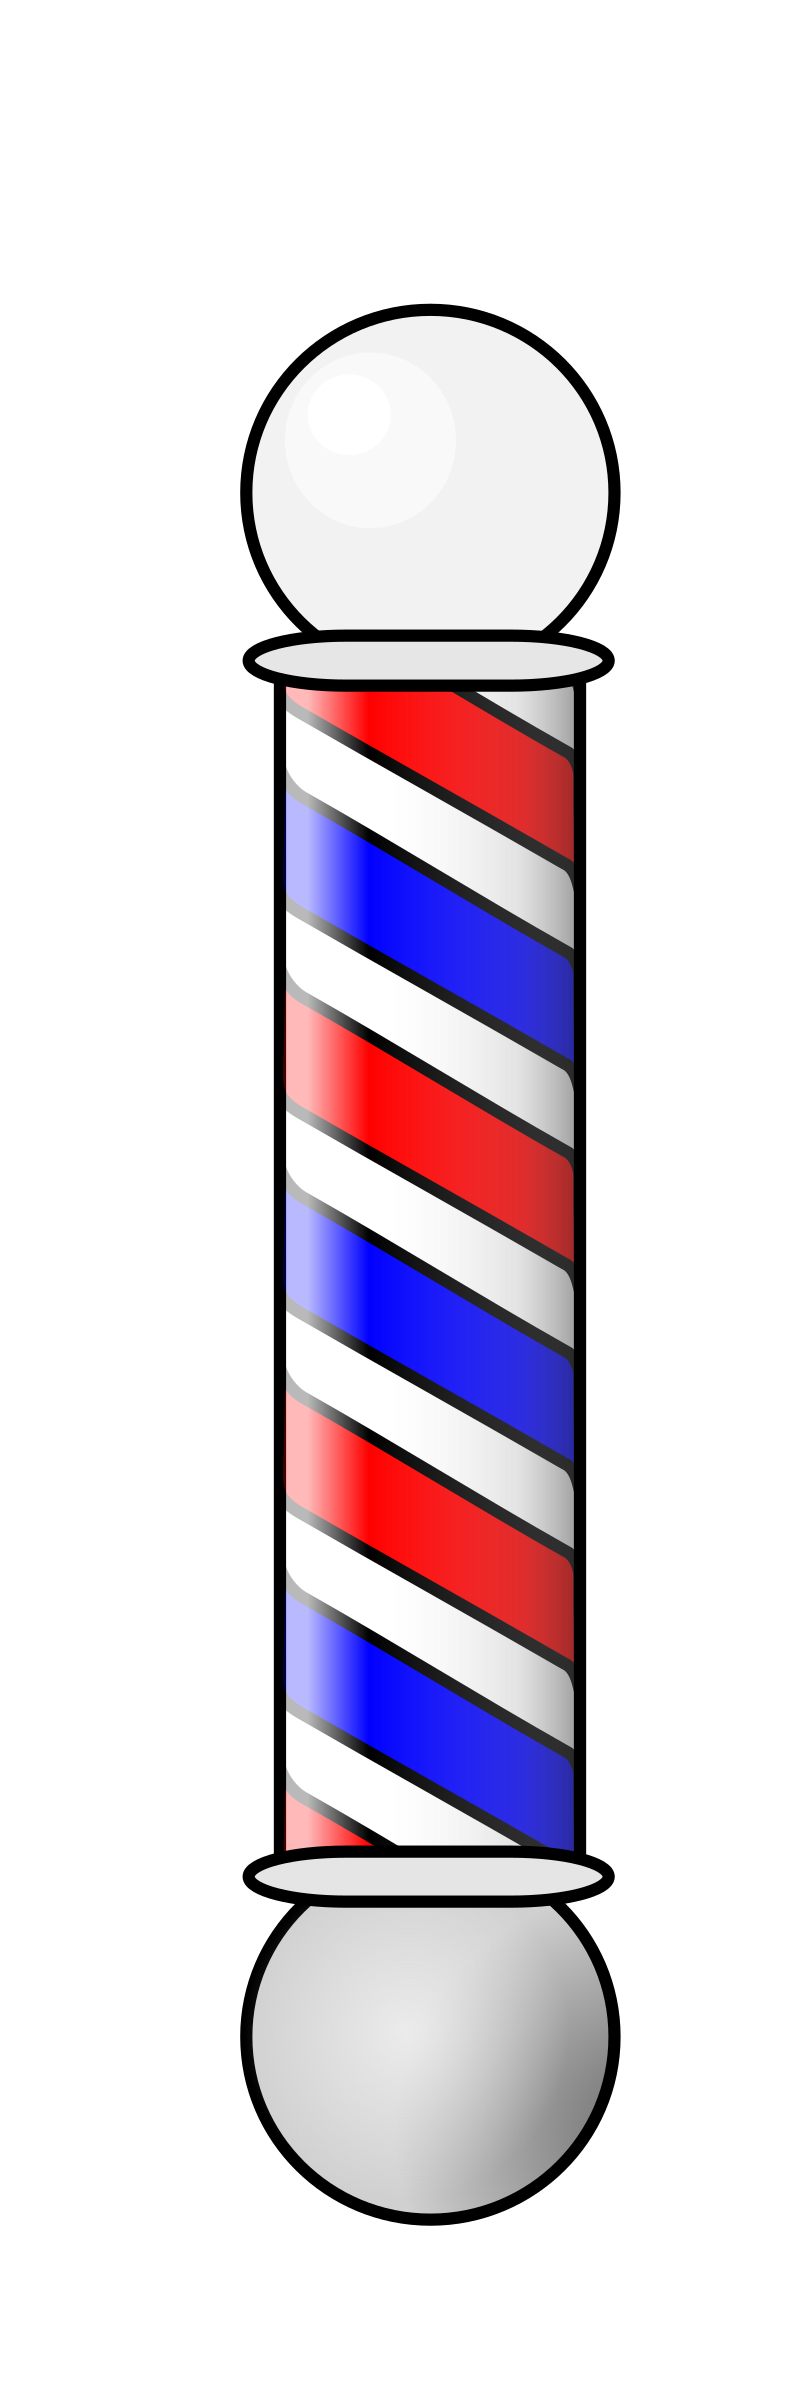 BarberShop Pole 2 Animation by aukipa